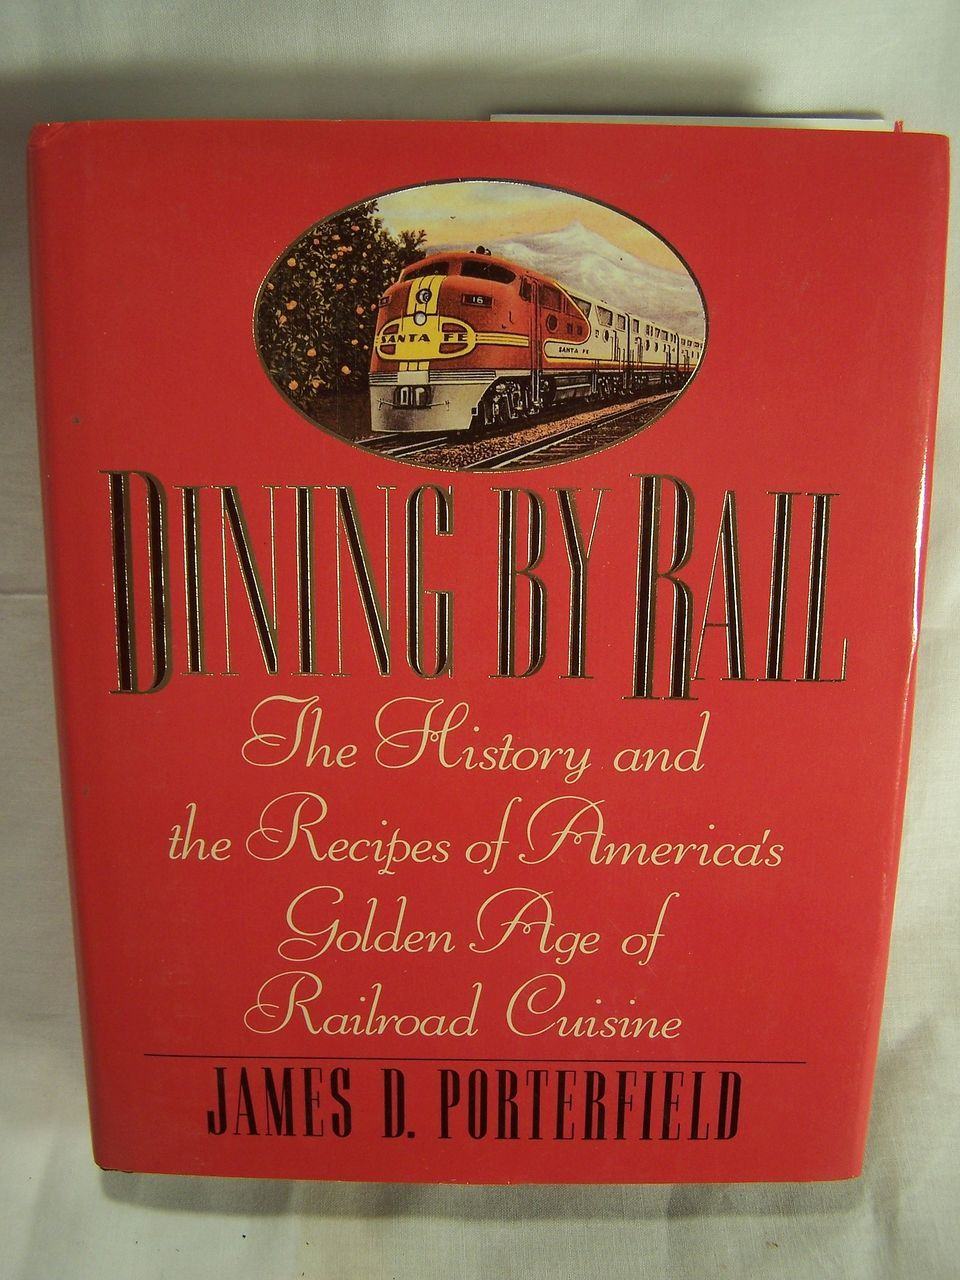 Dining by railhardcover book by james d porterfield